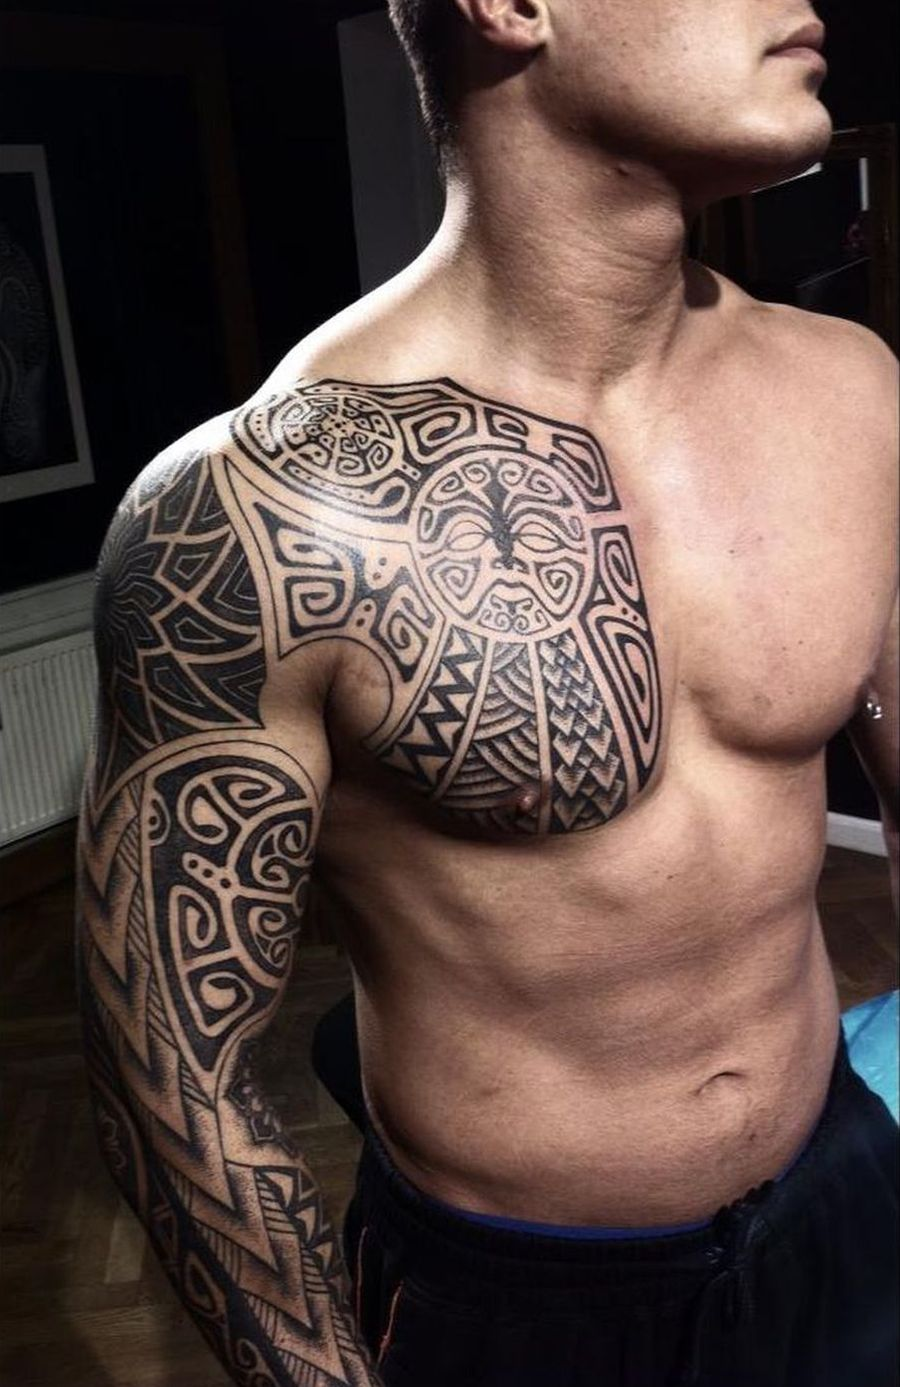 tattoos inspired by Vikings